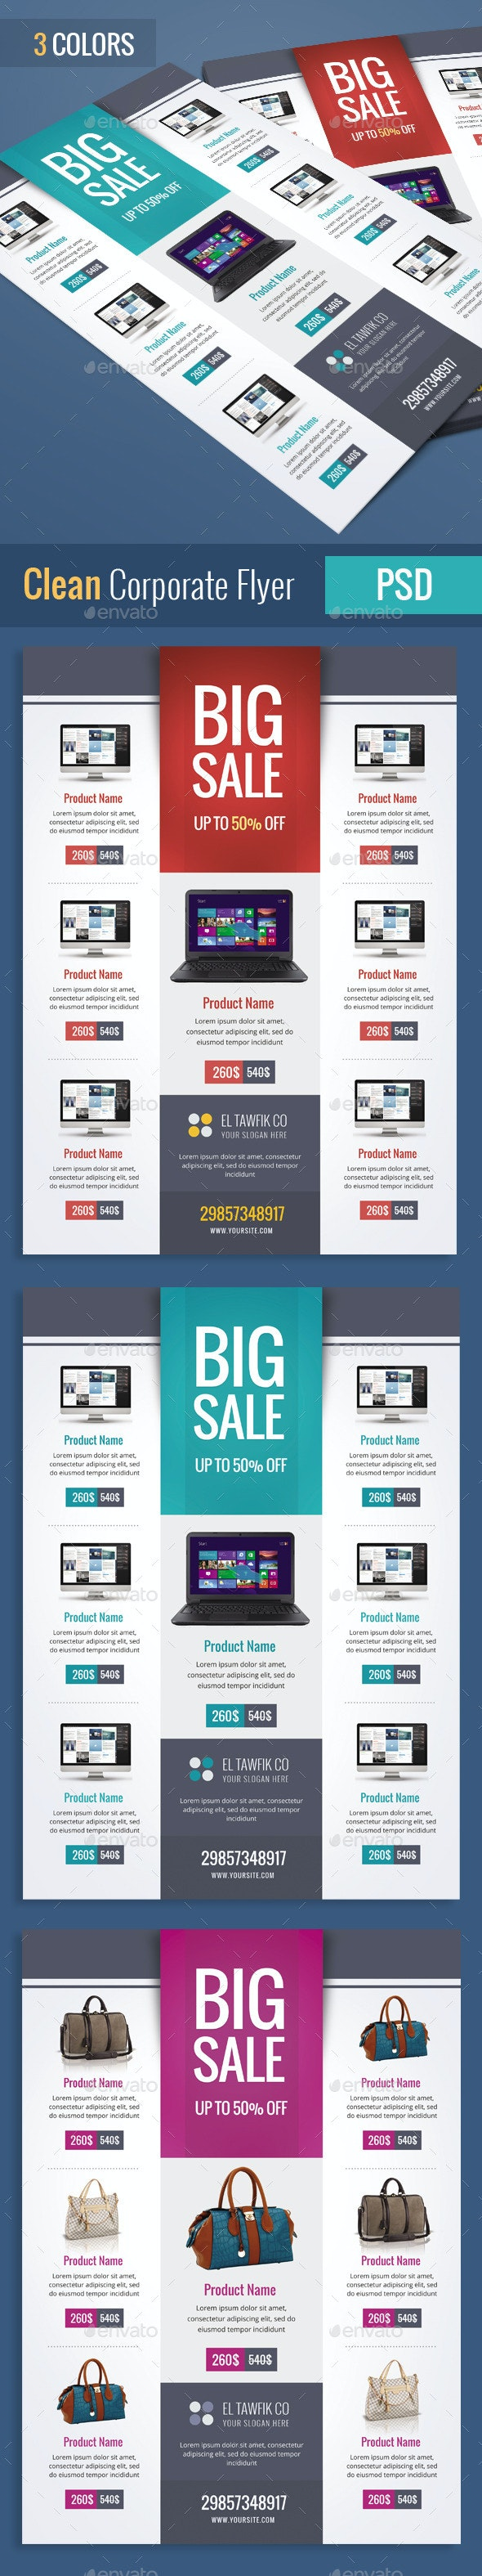 Products Sale Flyers - Corporate Flyers